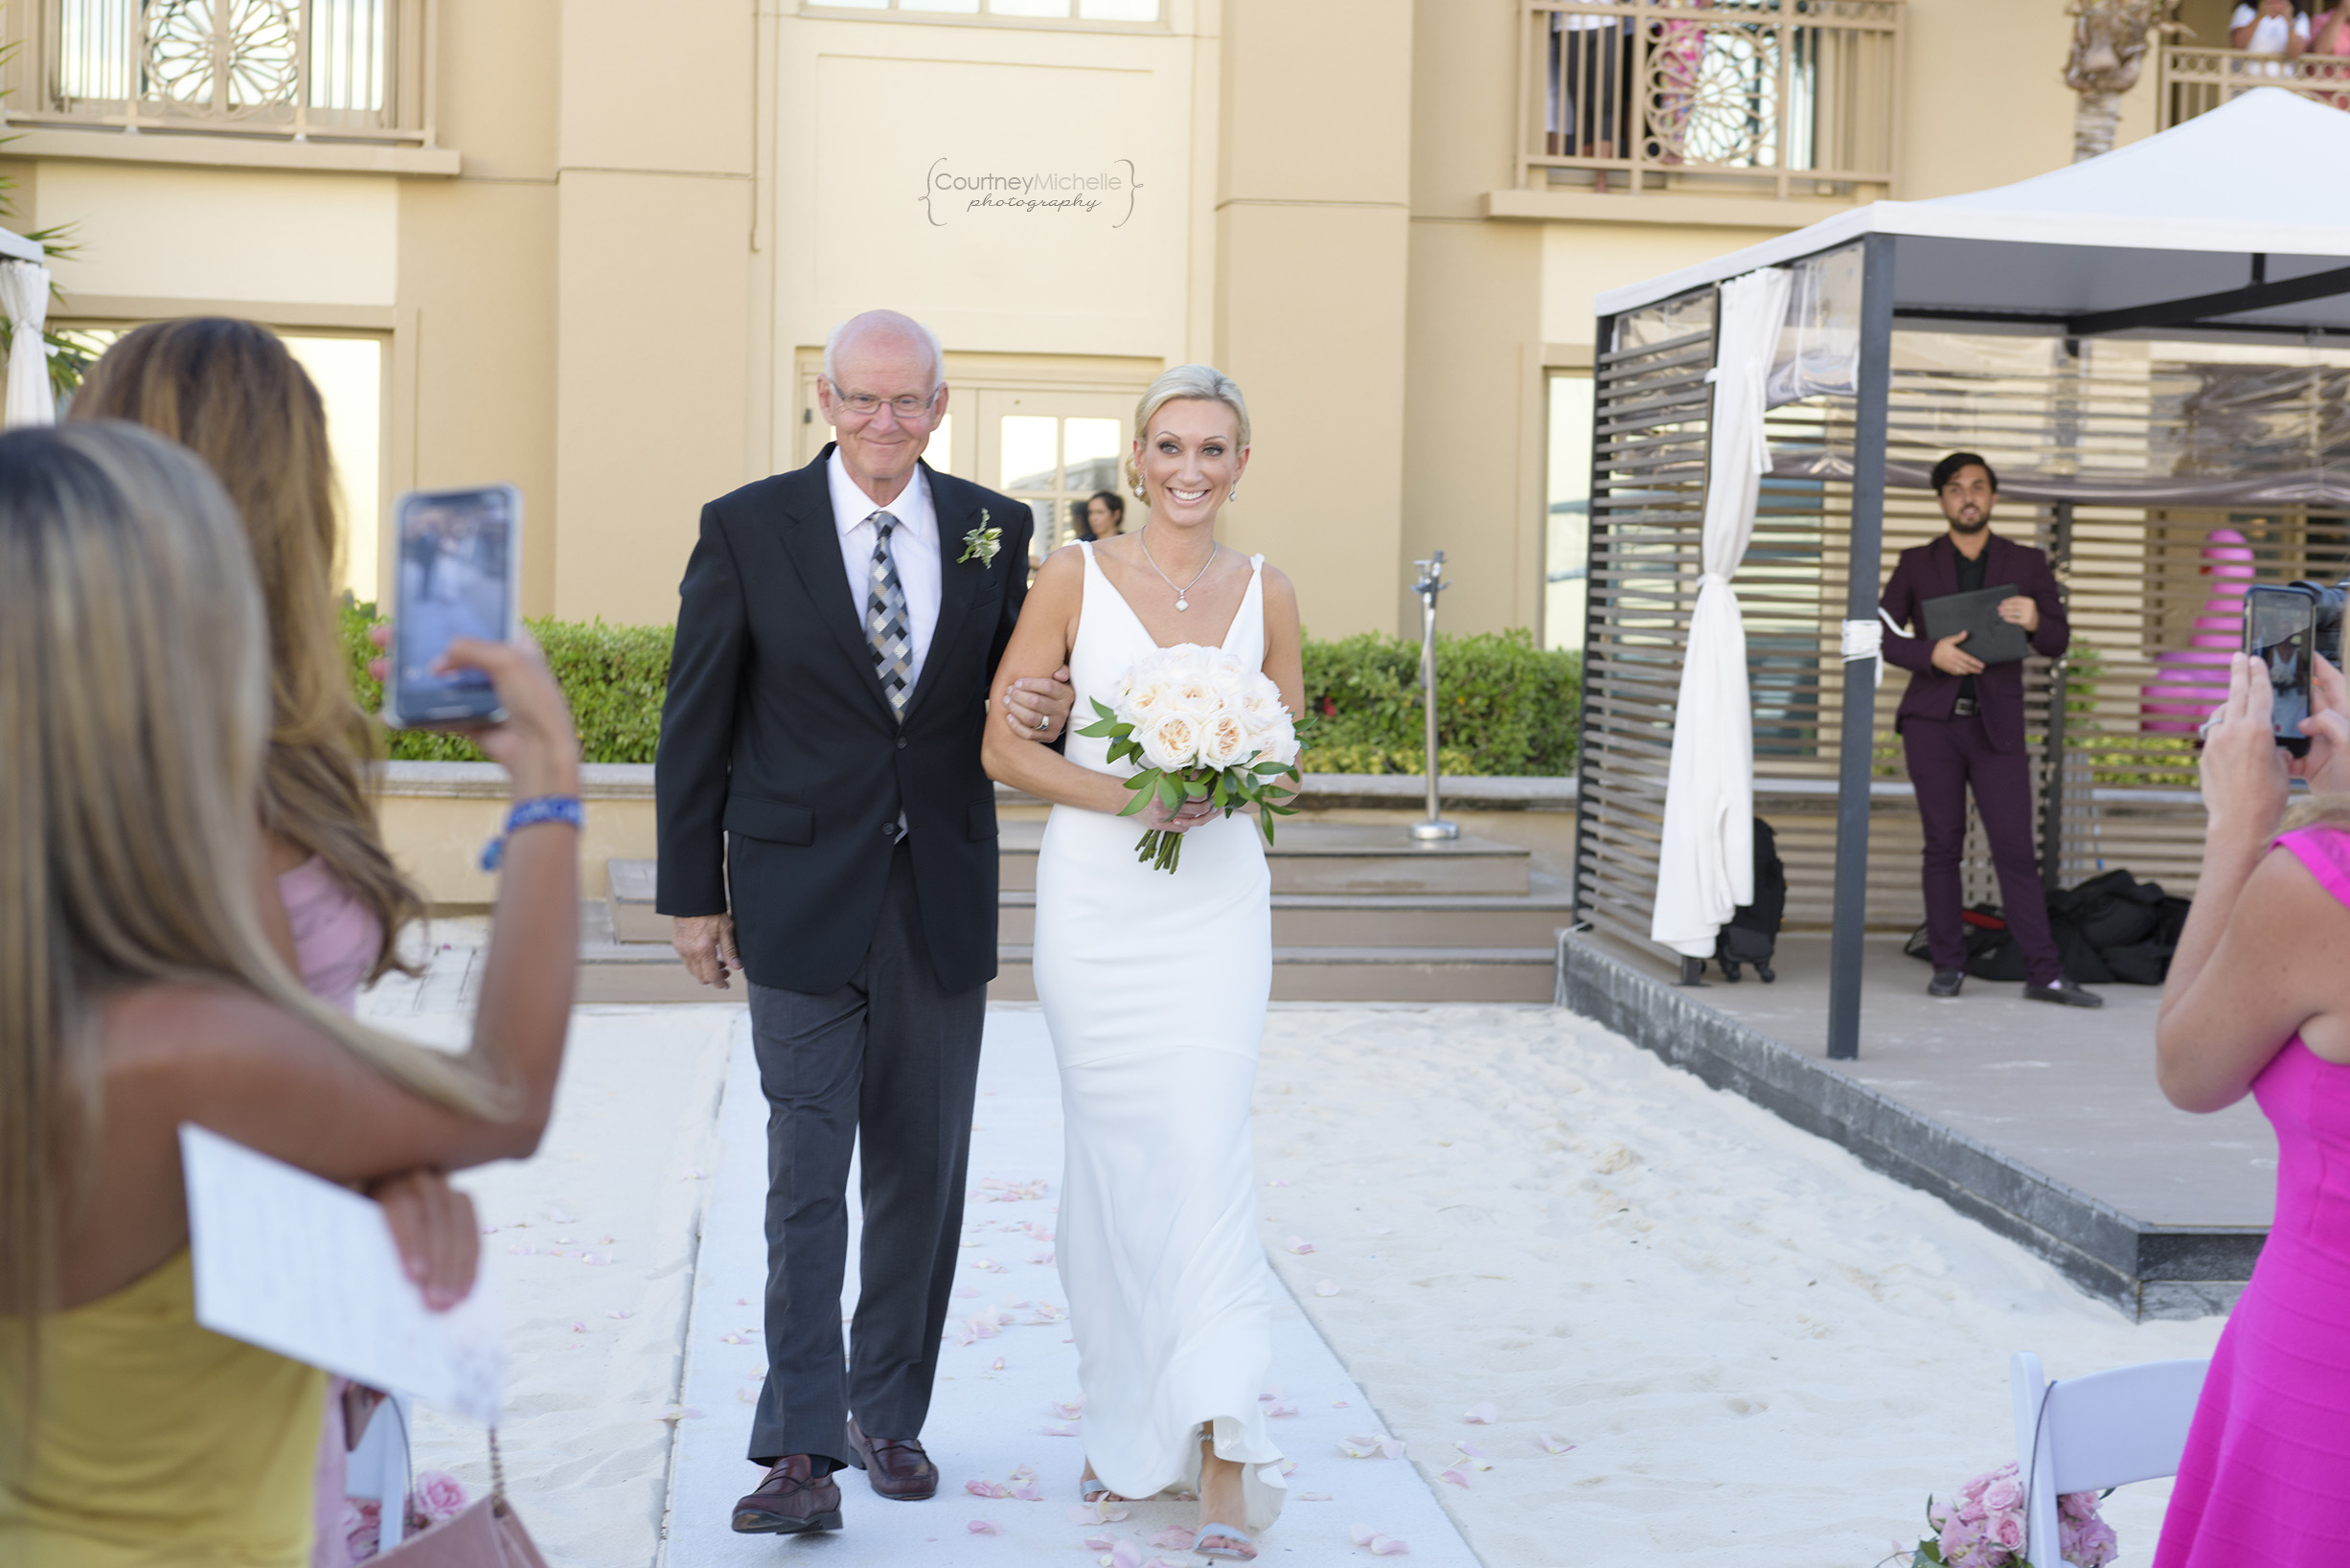 bride-walking-down-aisle-with-father-grand-cayman-beach-wedding-photography-by-courtney-laper©CopyrightCMP-LeaAnneRaj-7704.jpg